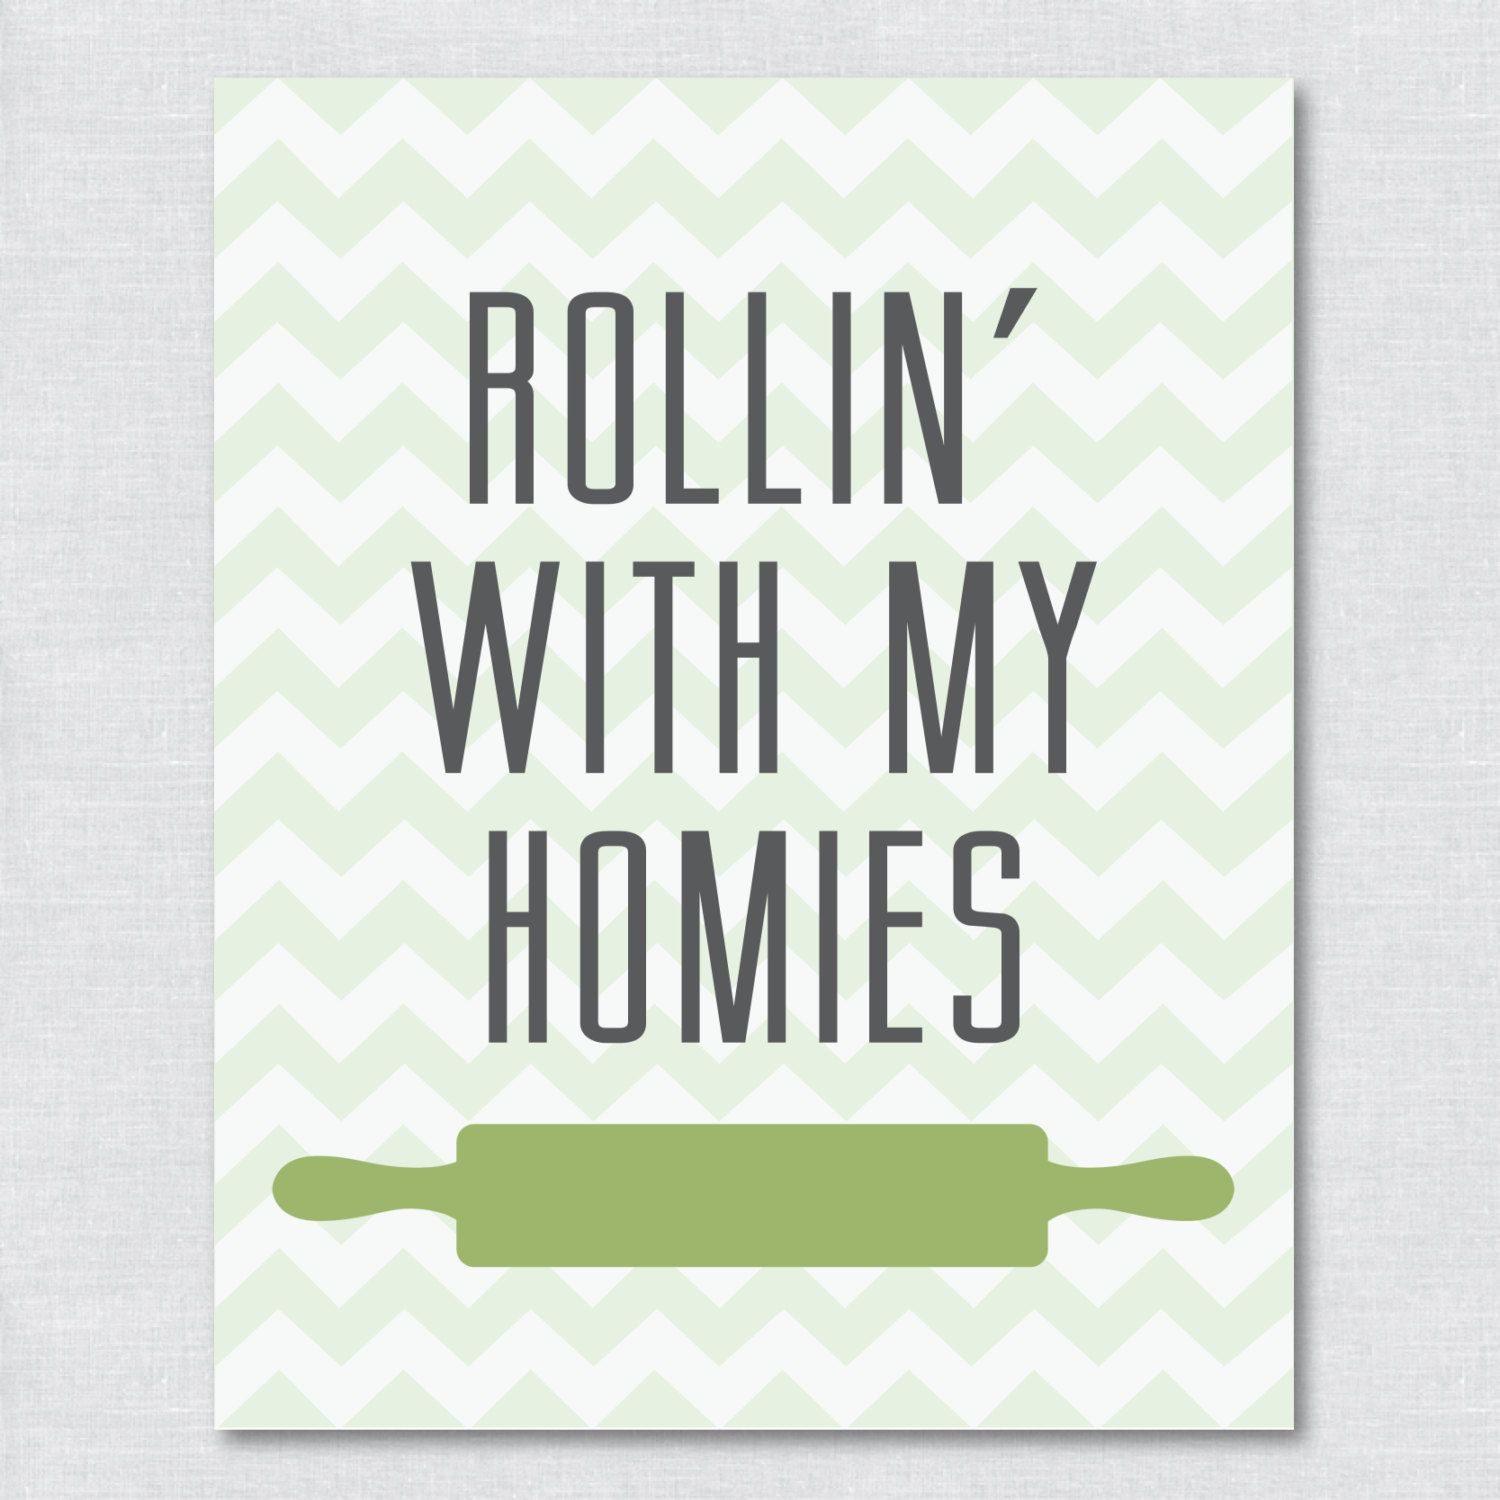 Printable kitchen art - Printable 8x10 Kitchen Art Print Rollin With My Homies Digital File